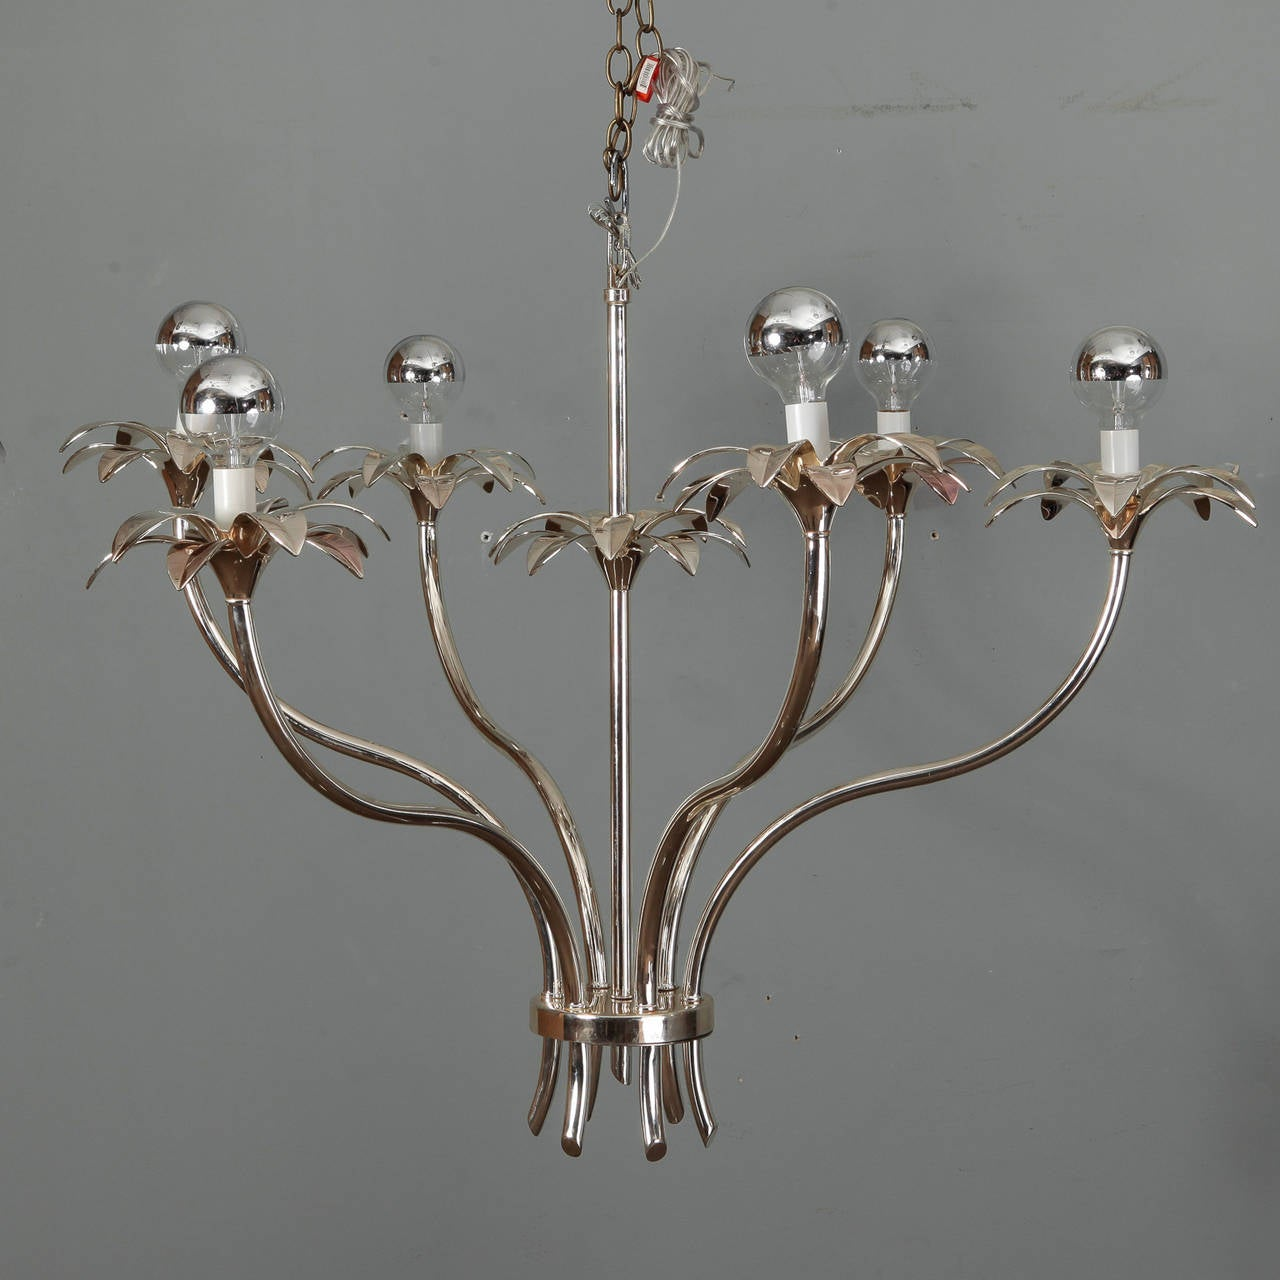 Pair of sculptural, floral and stem form chandeliers have six arms and nickel frames. Found in France, circa 1960s, unknown manufacturer. New wiring for US electrical standards. Sold and priced as a pair.